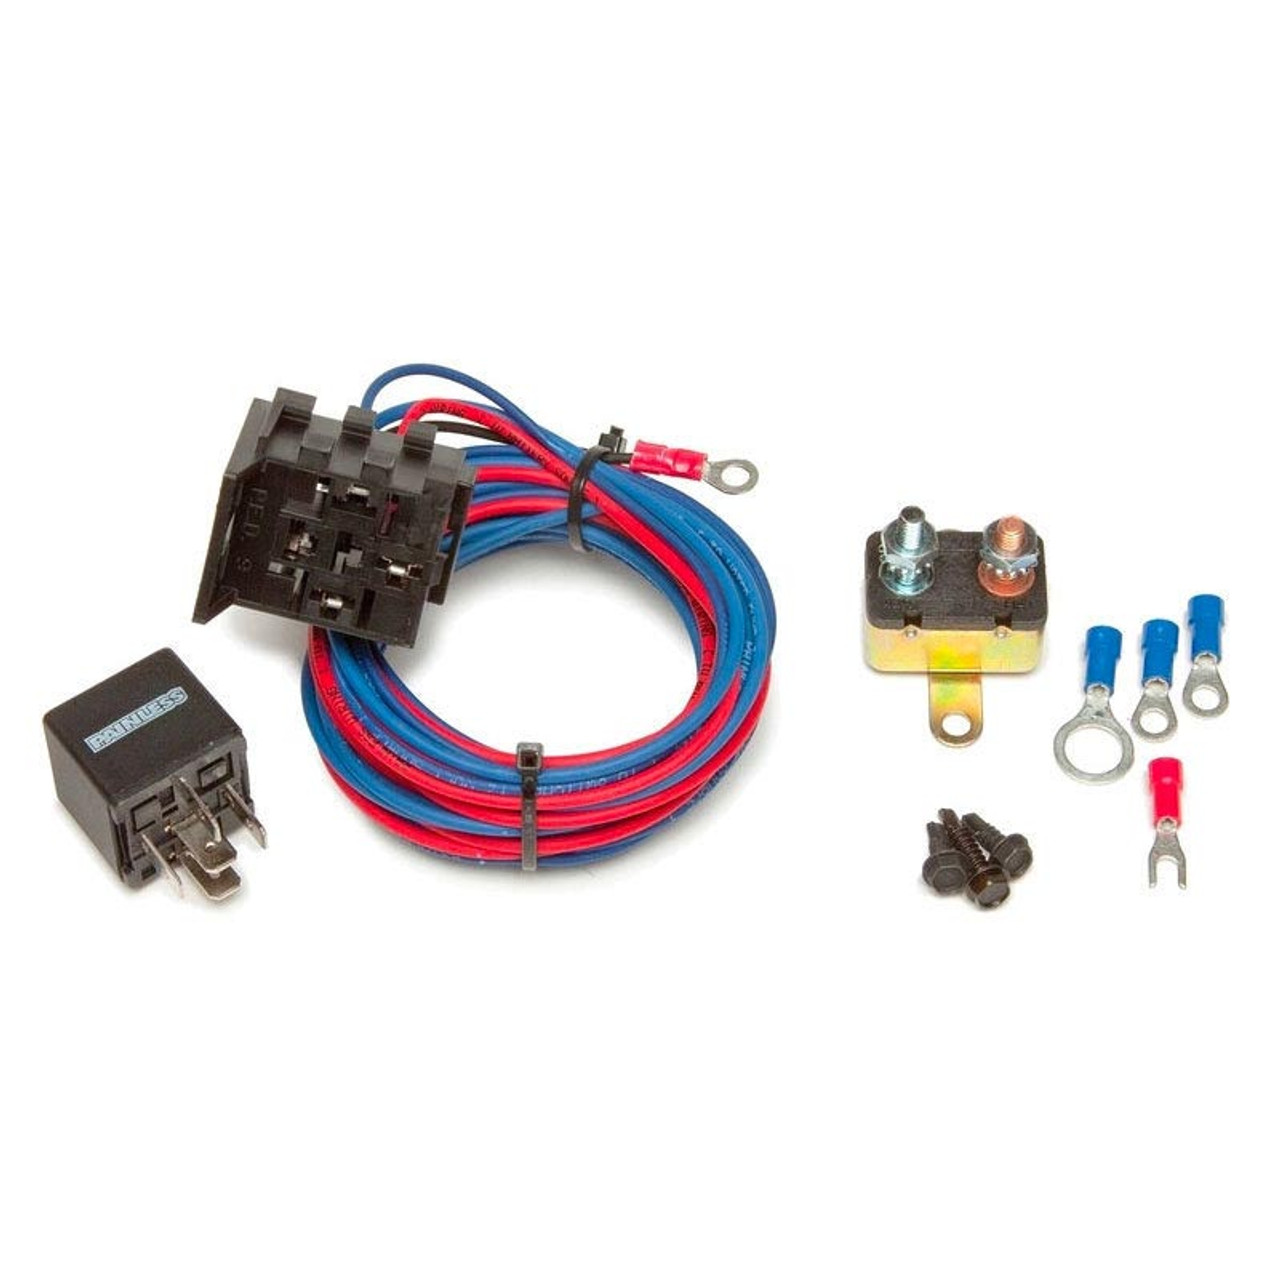 50106__27182.1521643676?c=2?imbypass=on 30 amp electric water pump relay kit from painless performance